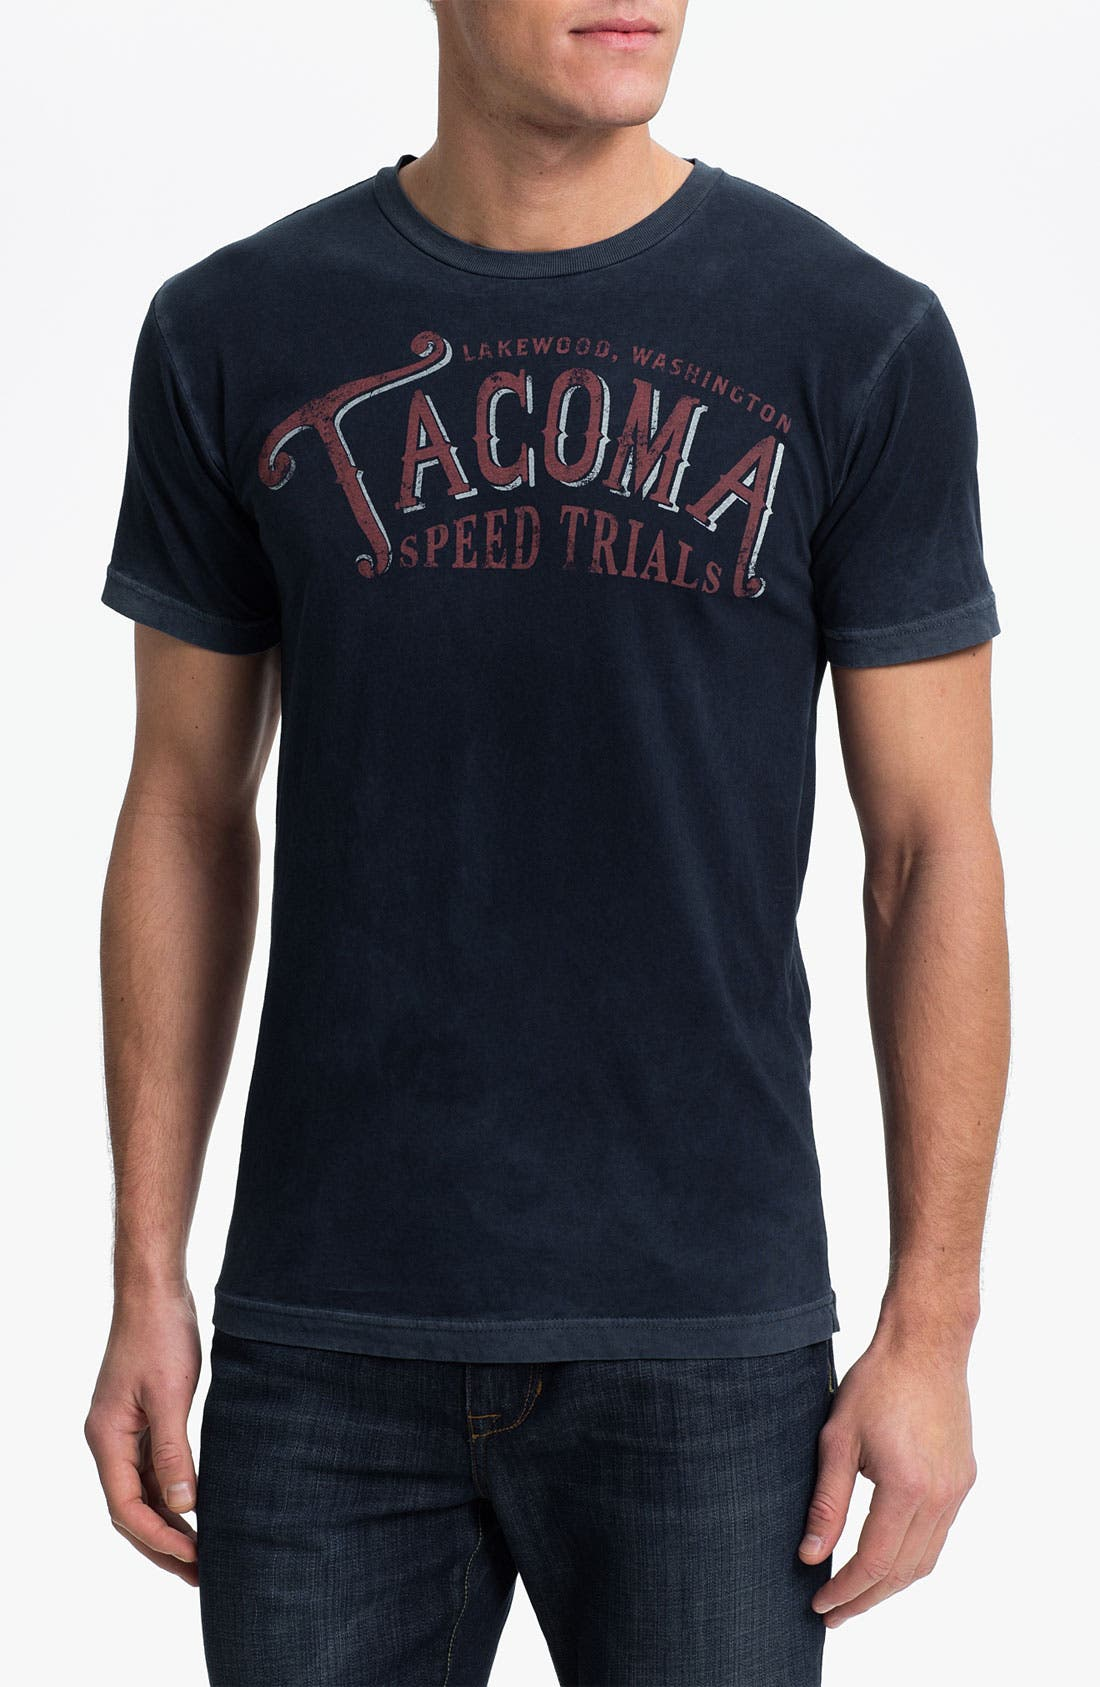 Main Image - Denim & Leathers by Andrew Marc 'Tacoma Speed Trials' Graphic T-Shirt